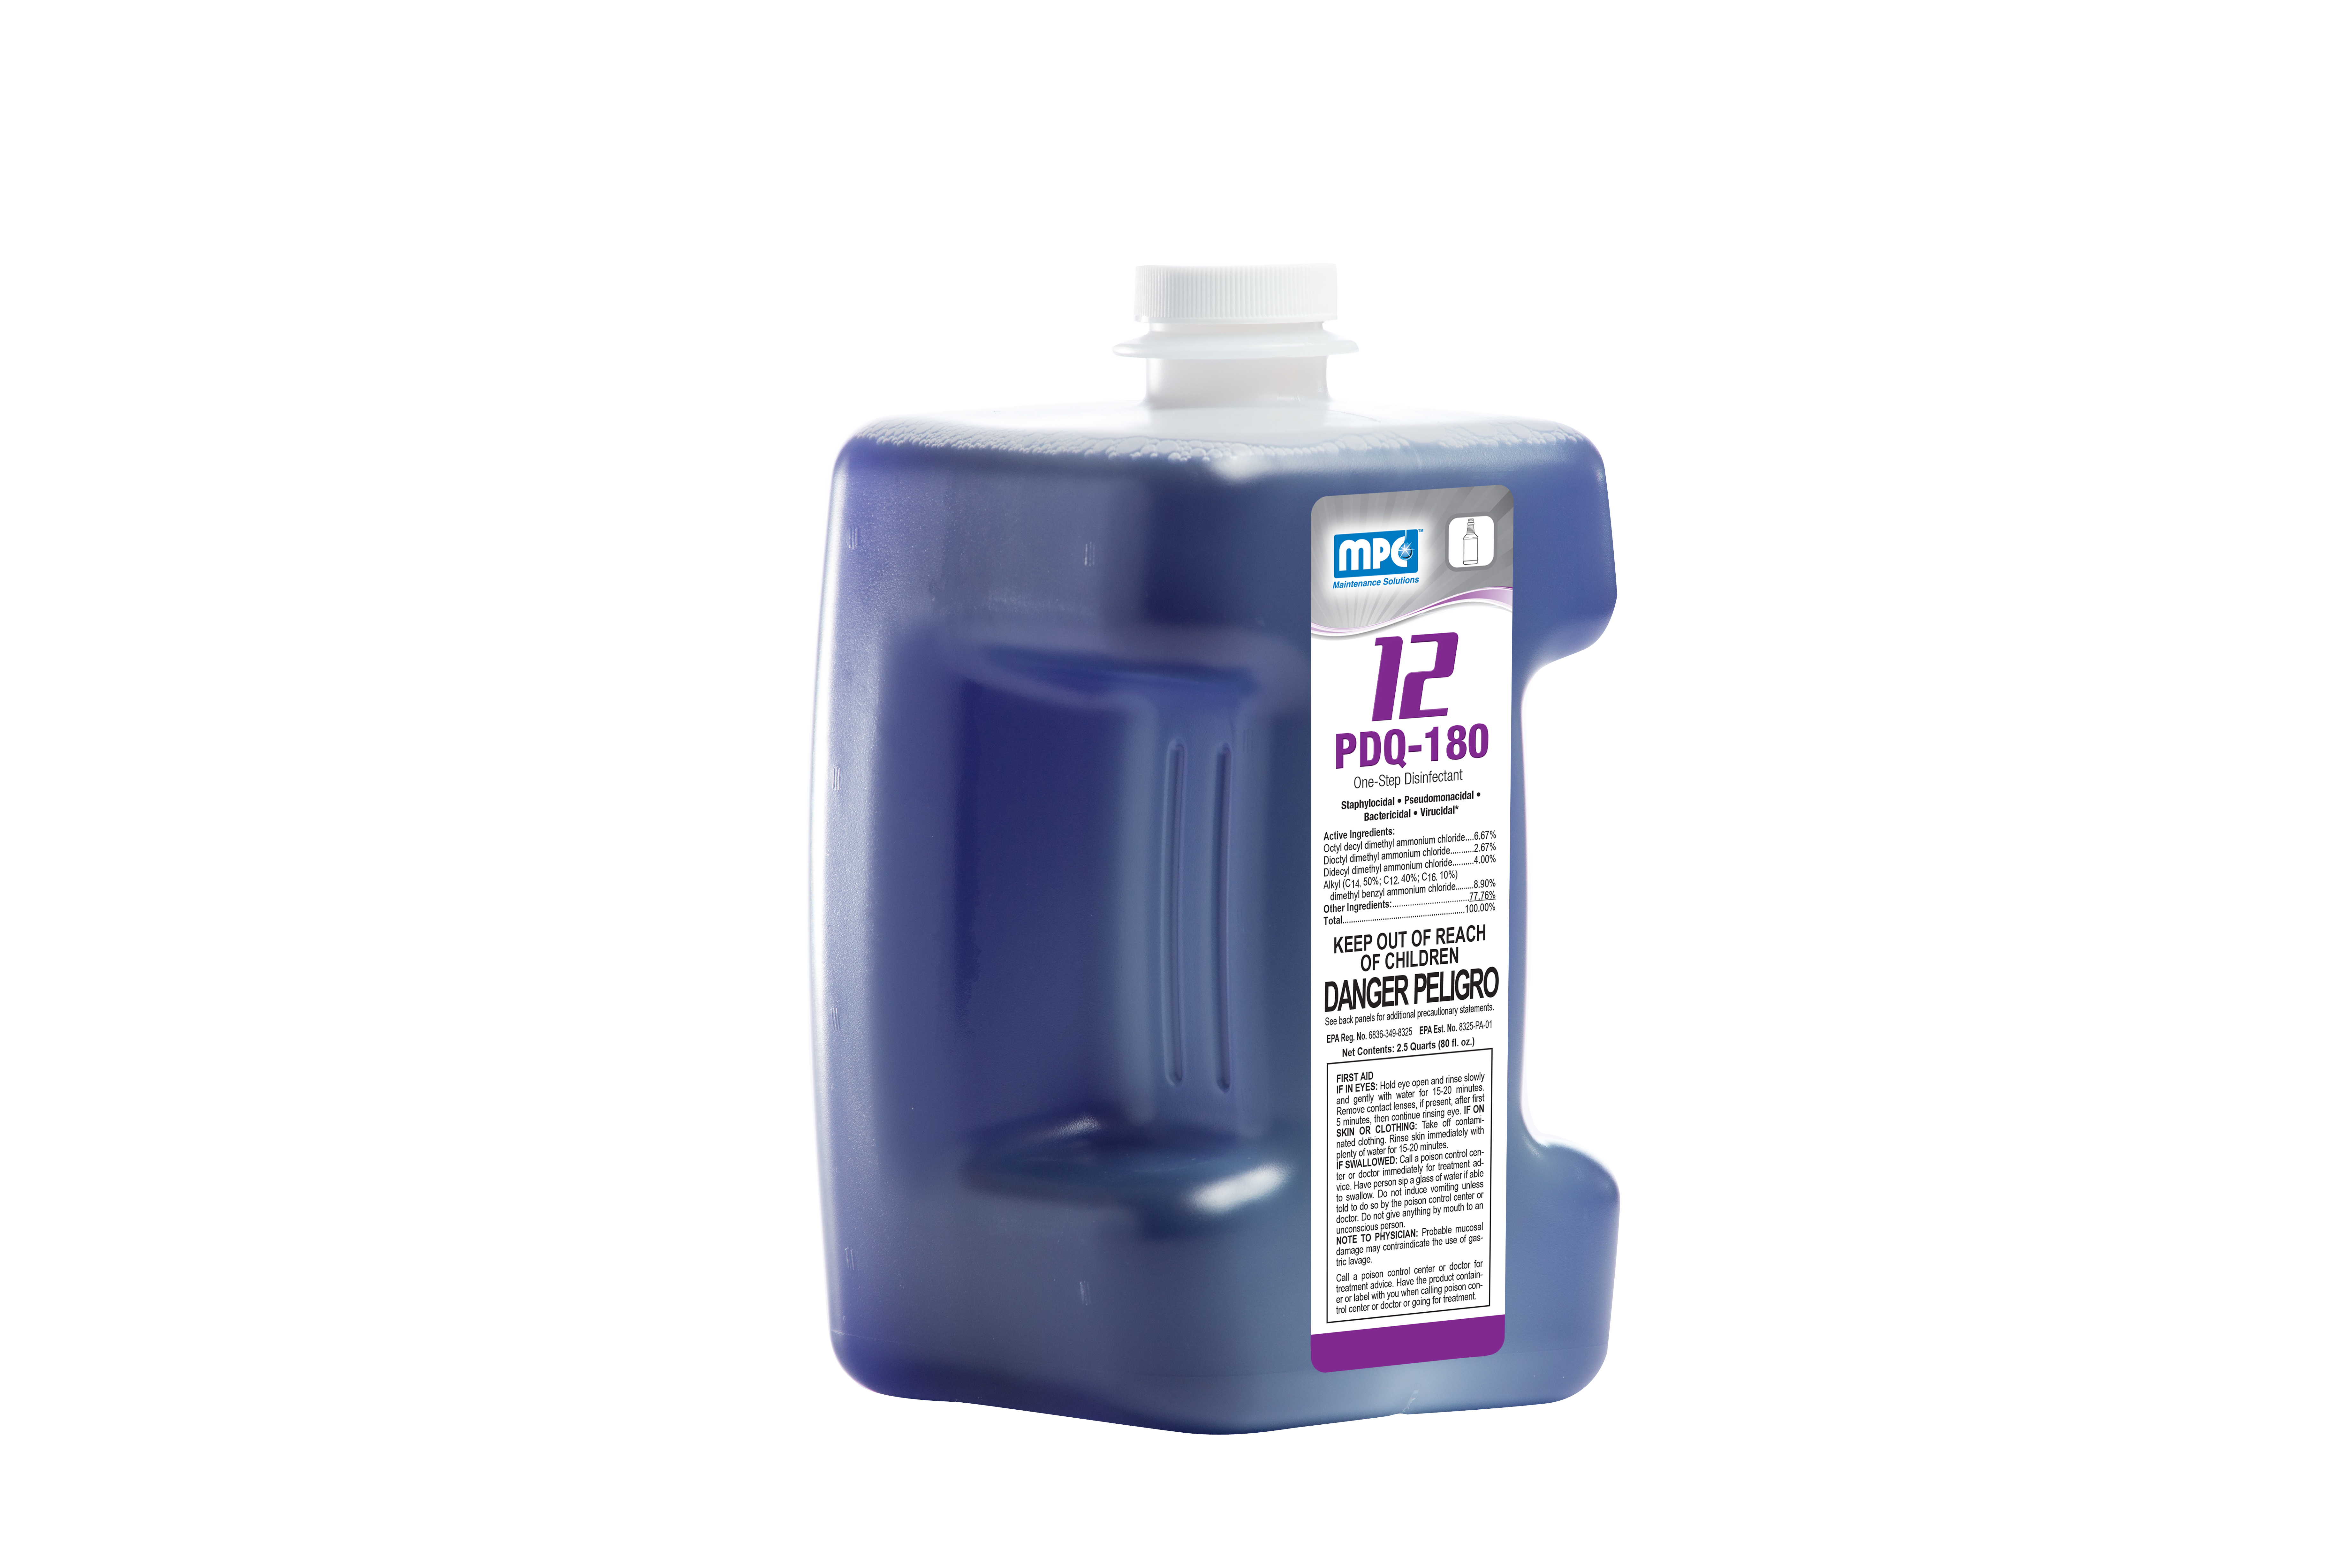 #12 PDQ 180 One Step Disinfectant 80oz